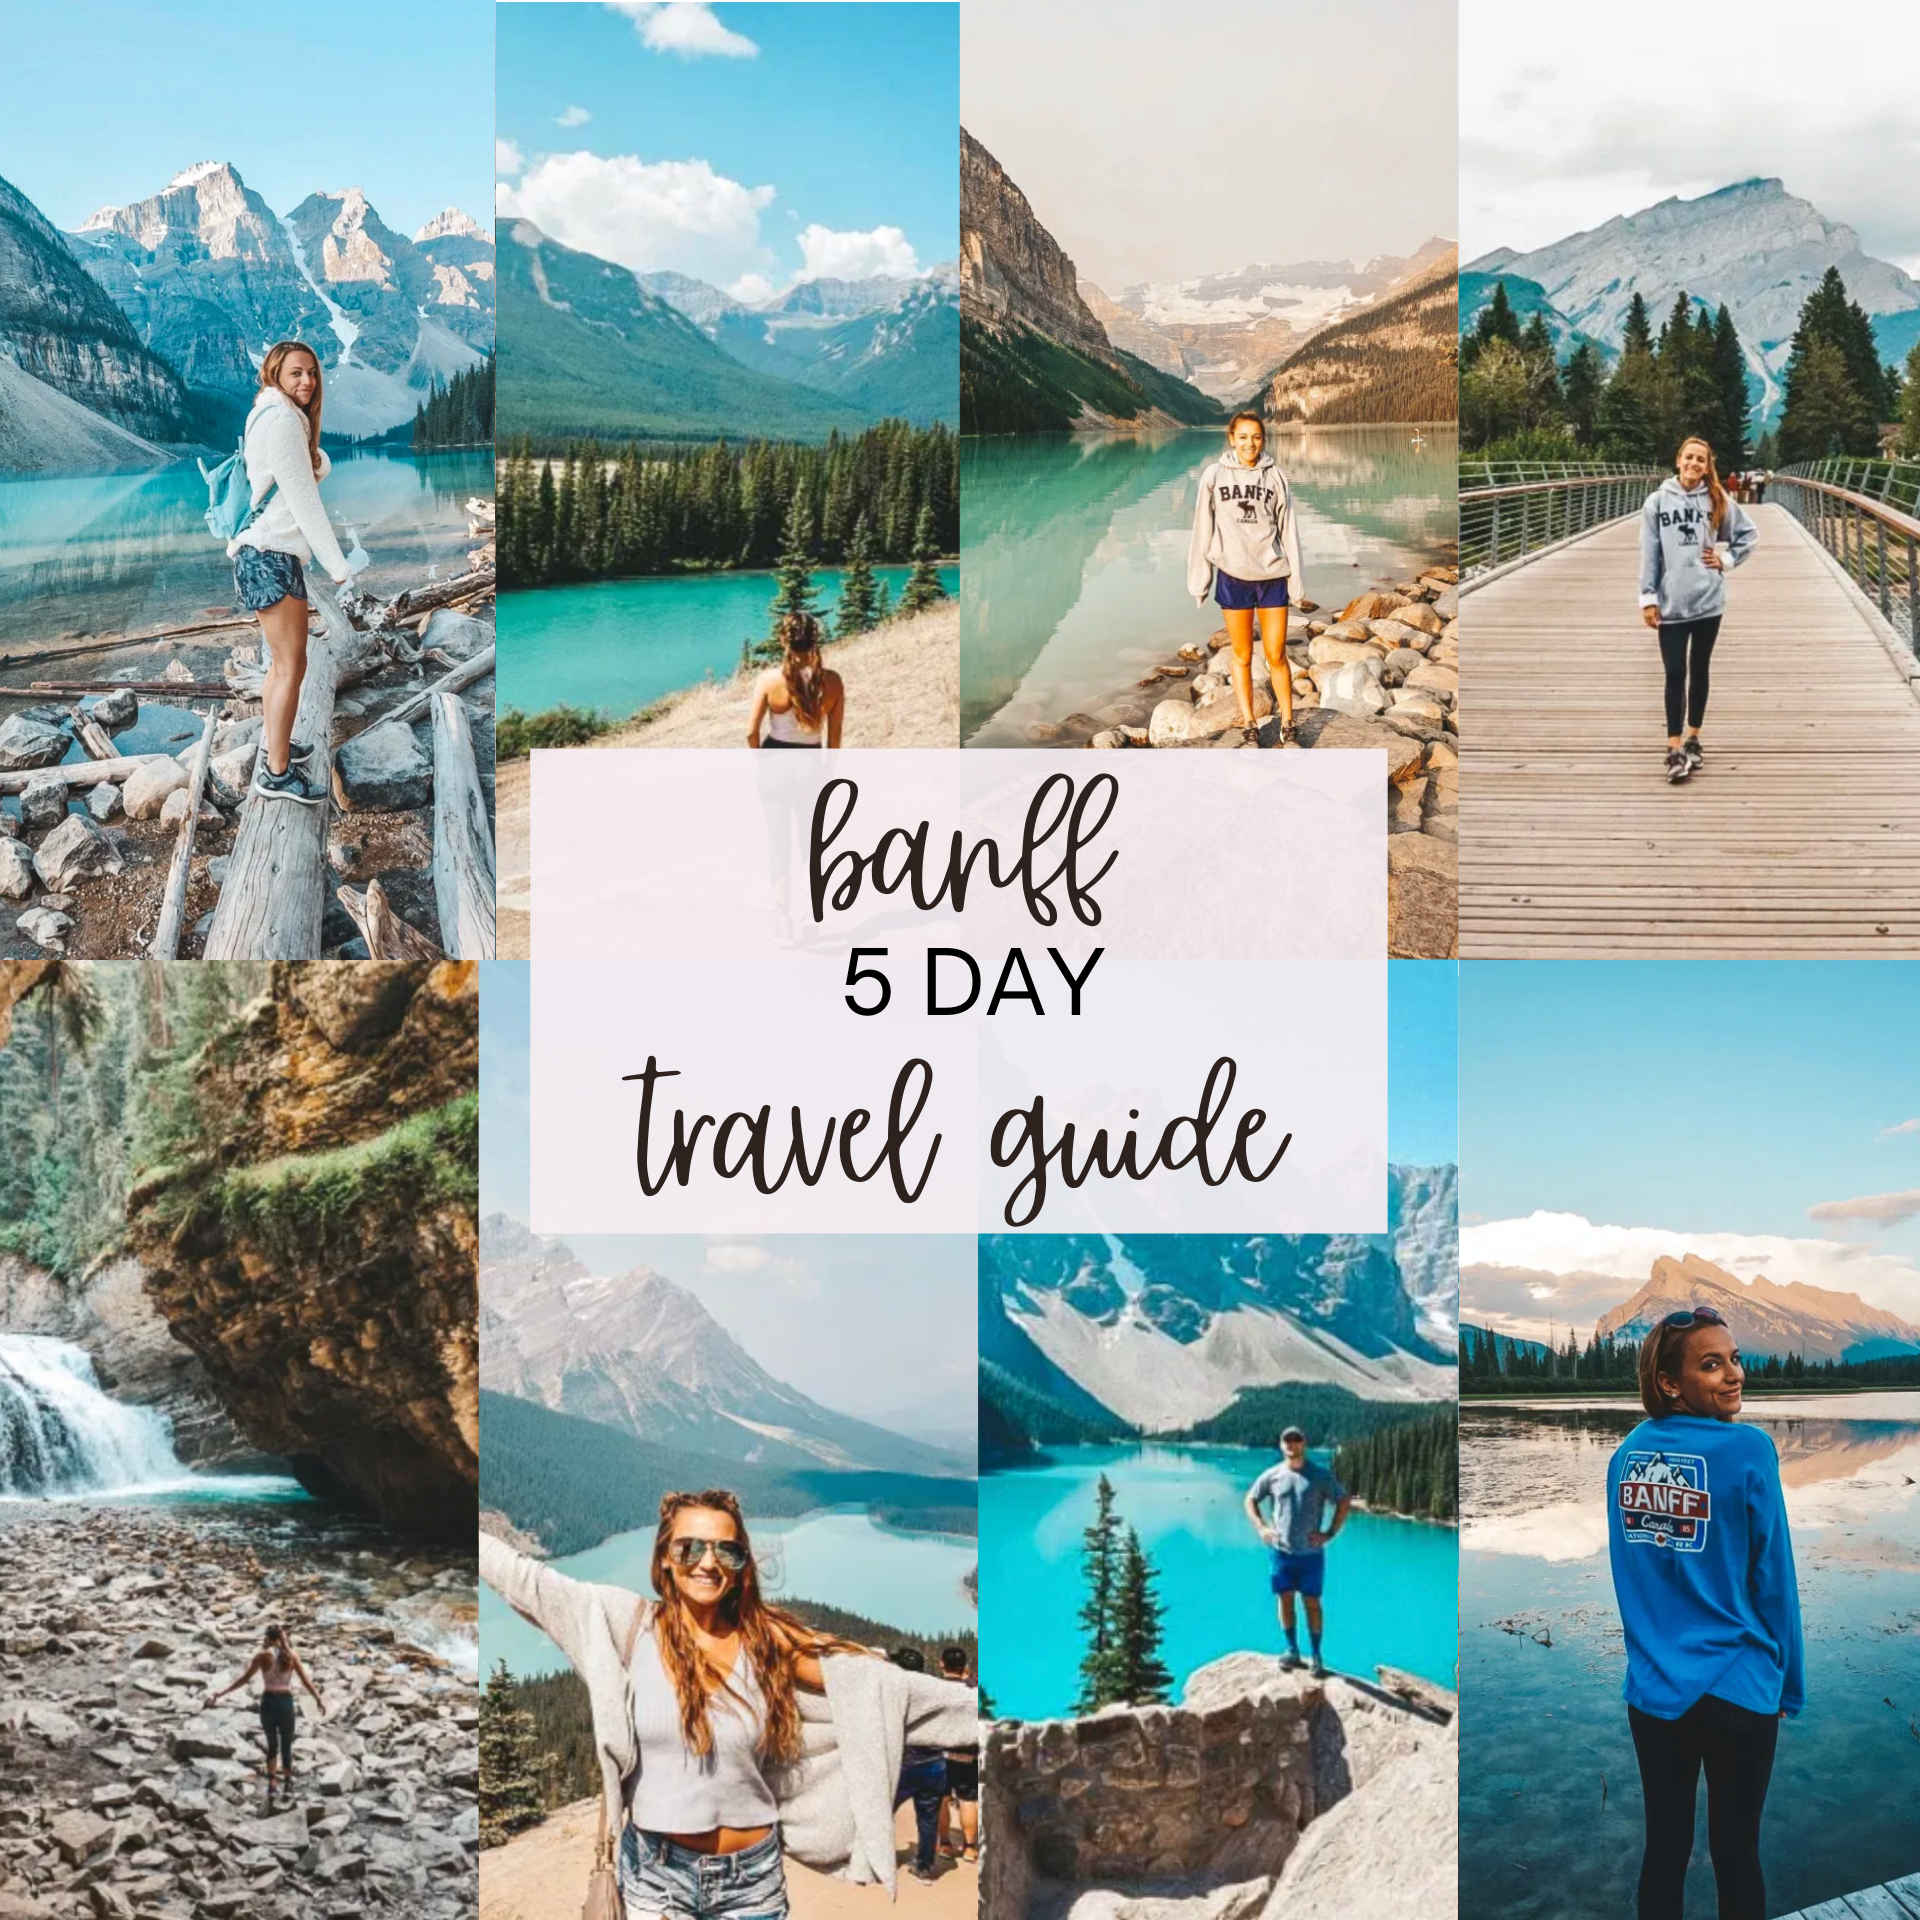 Banff Travel Guide - Complete 5 Day Itinerary